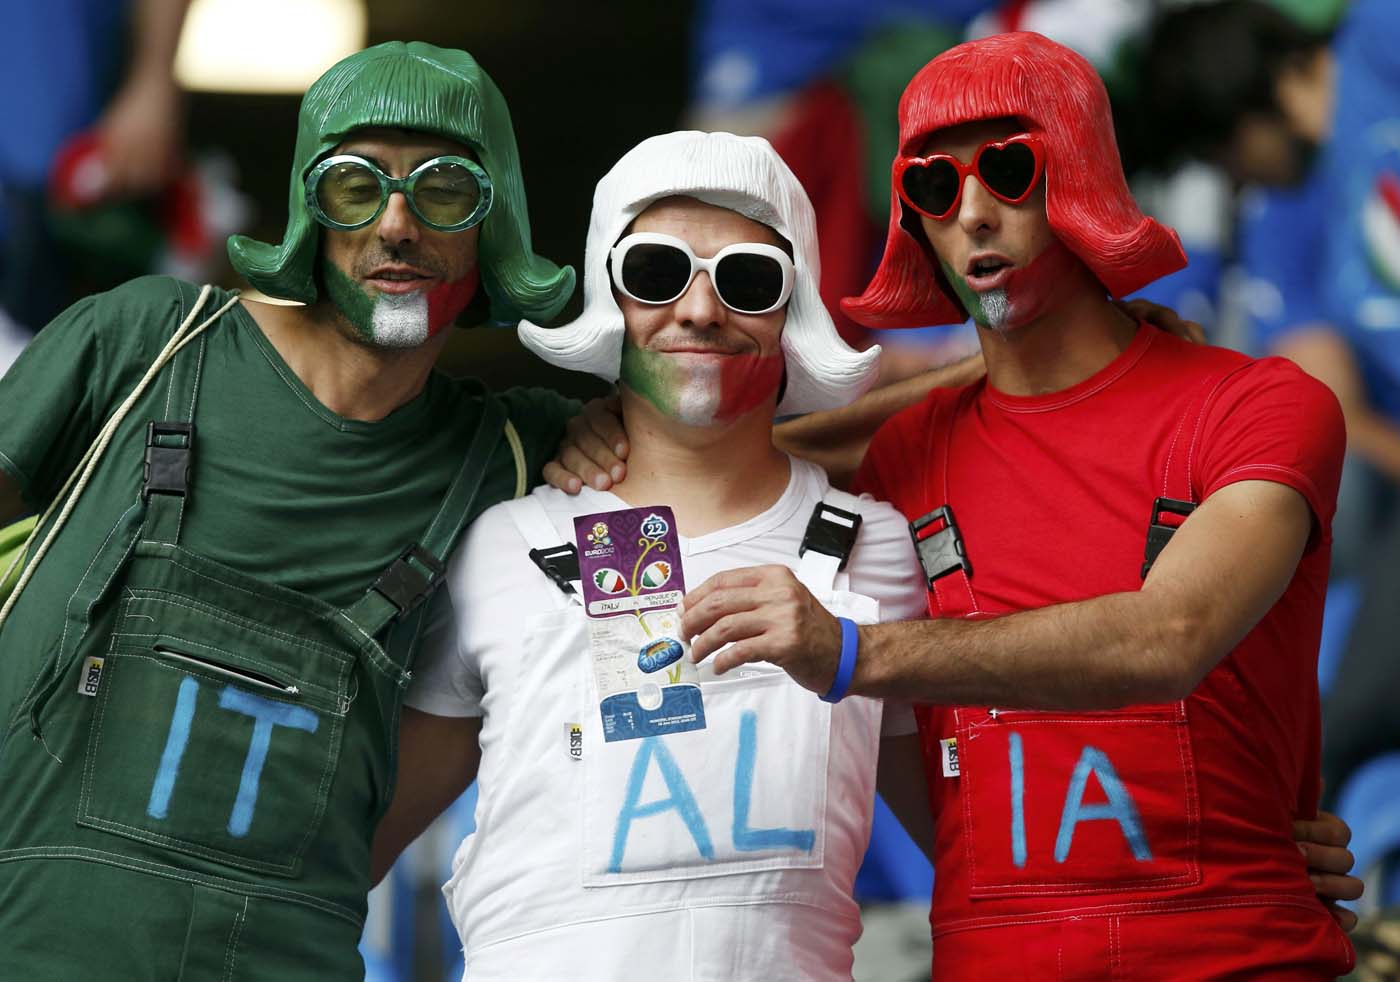 Italy's fans cheer before their Group C Euro 2012 soccer match against Ireland at the City stadium in Poznan, June 18, 2012. (Sergio Perez/Reuters)